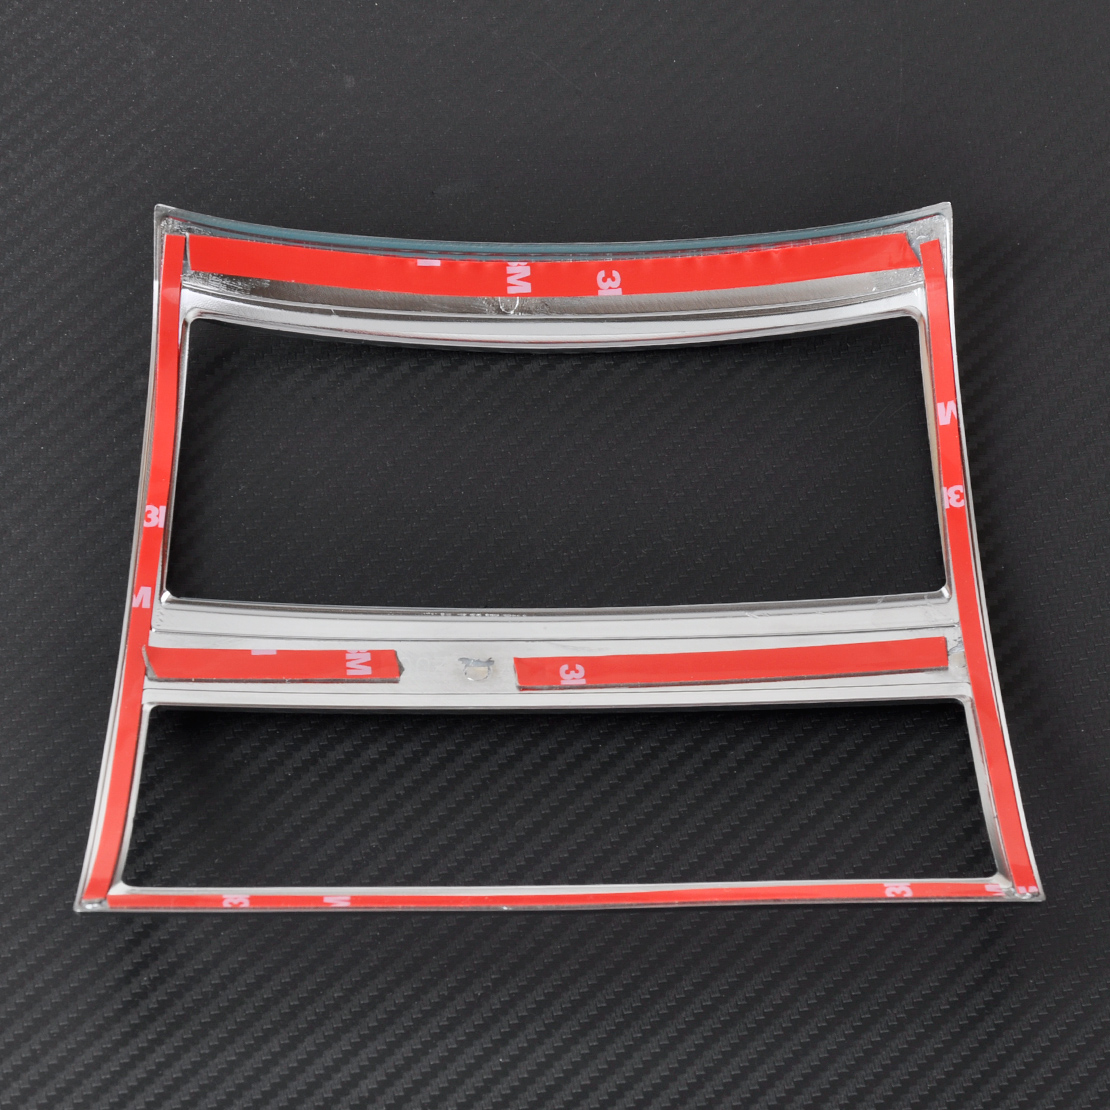 #BD180E Air Conditioning Vent Trim Cover For 2011 2012 2013 2014  Most Effective 10975 Air Conditioning Vent Covers pictures with 1110x1110 px on helpvideos.info - Air Conditioners, Air Coolers and more